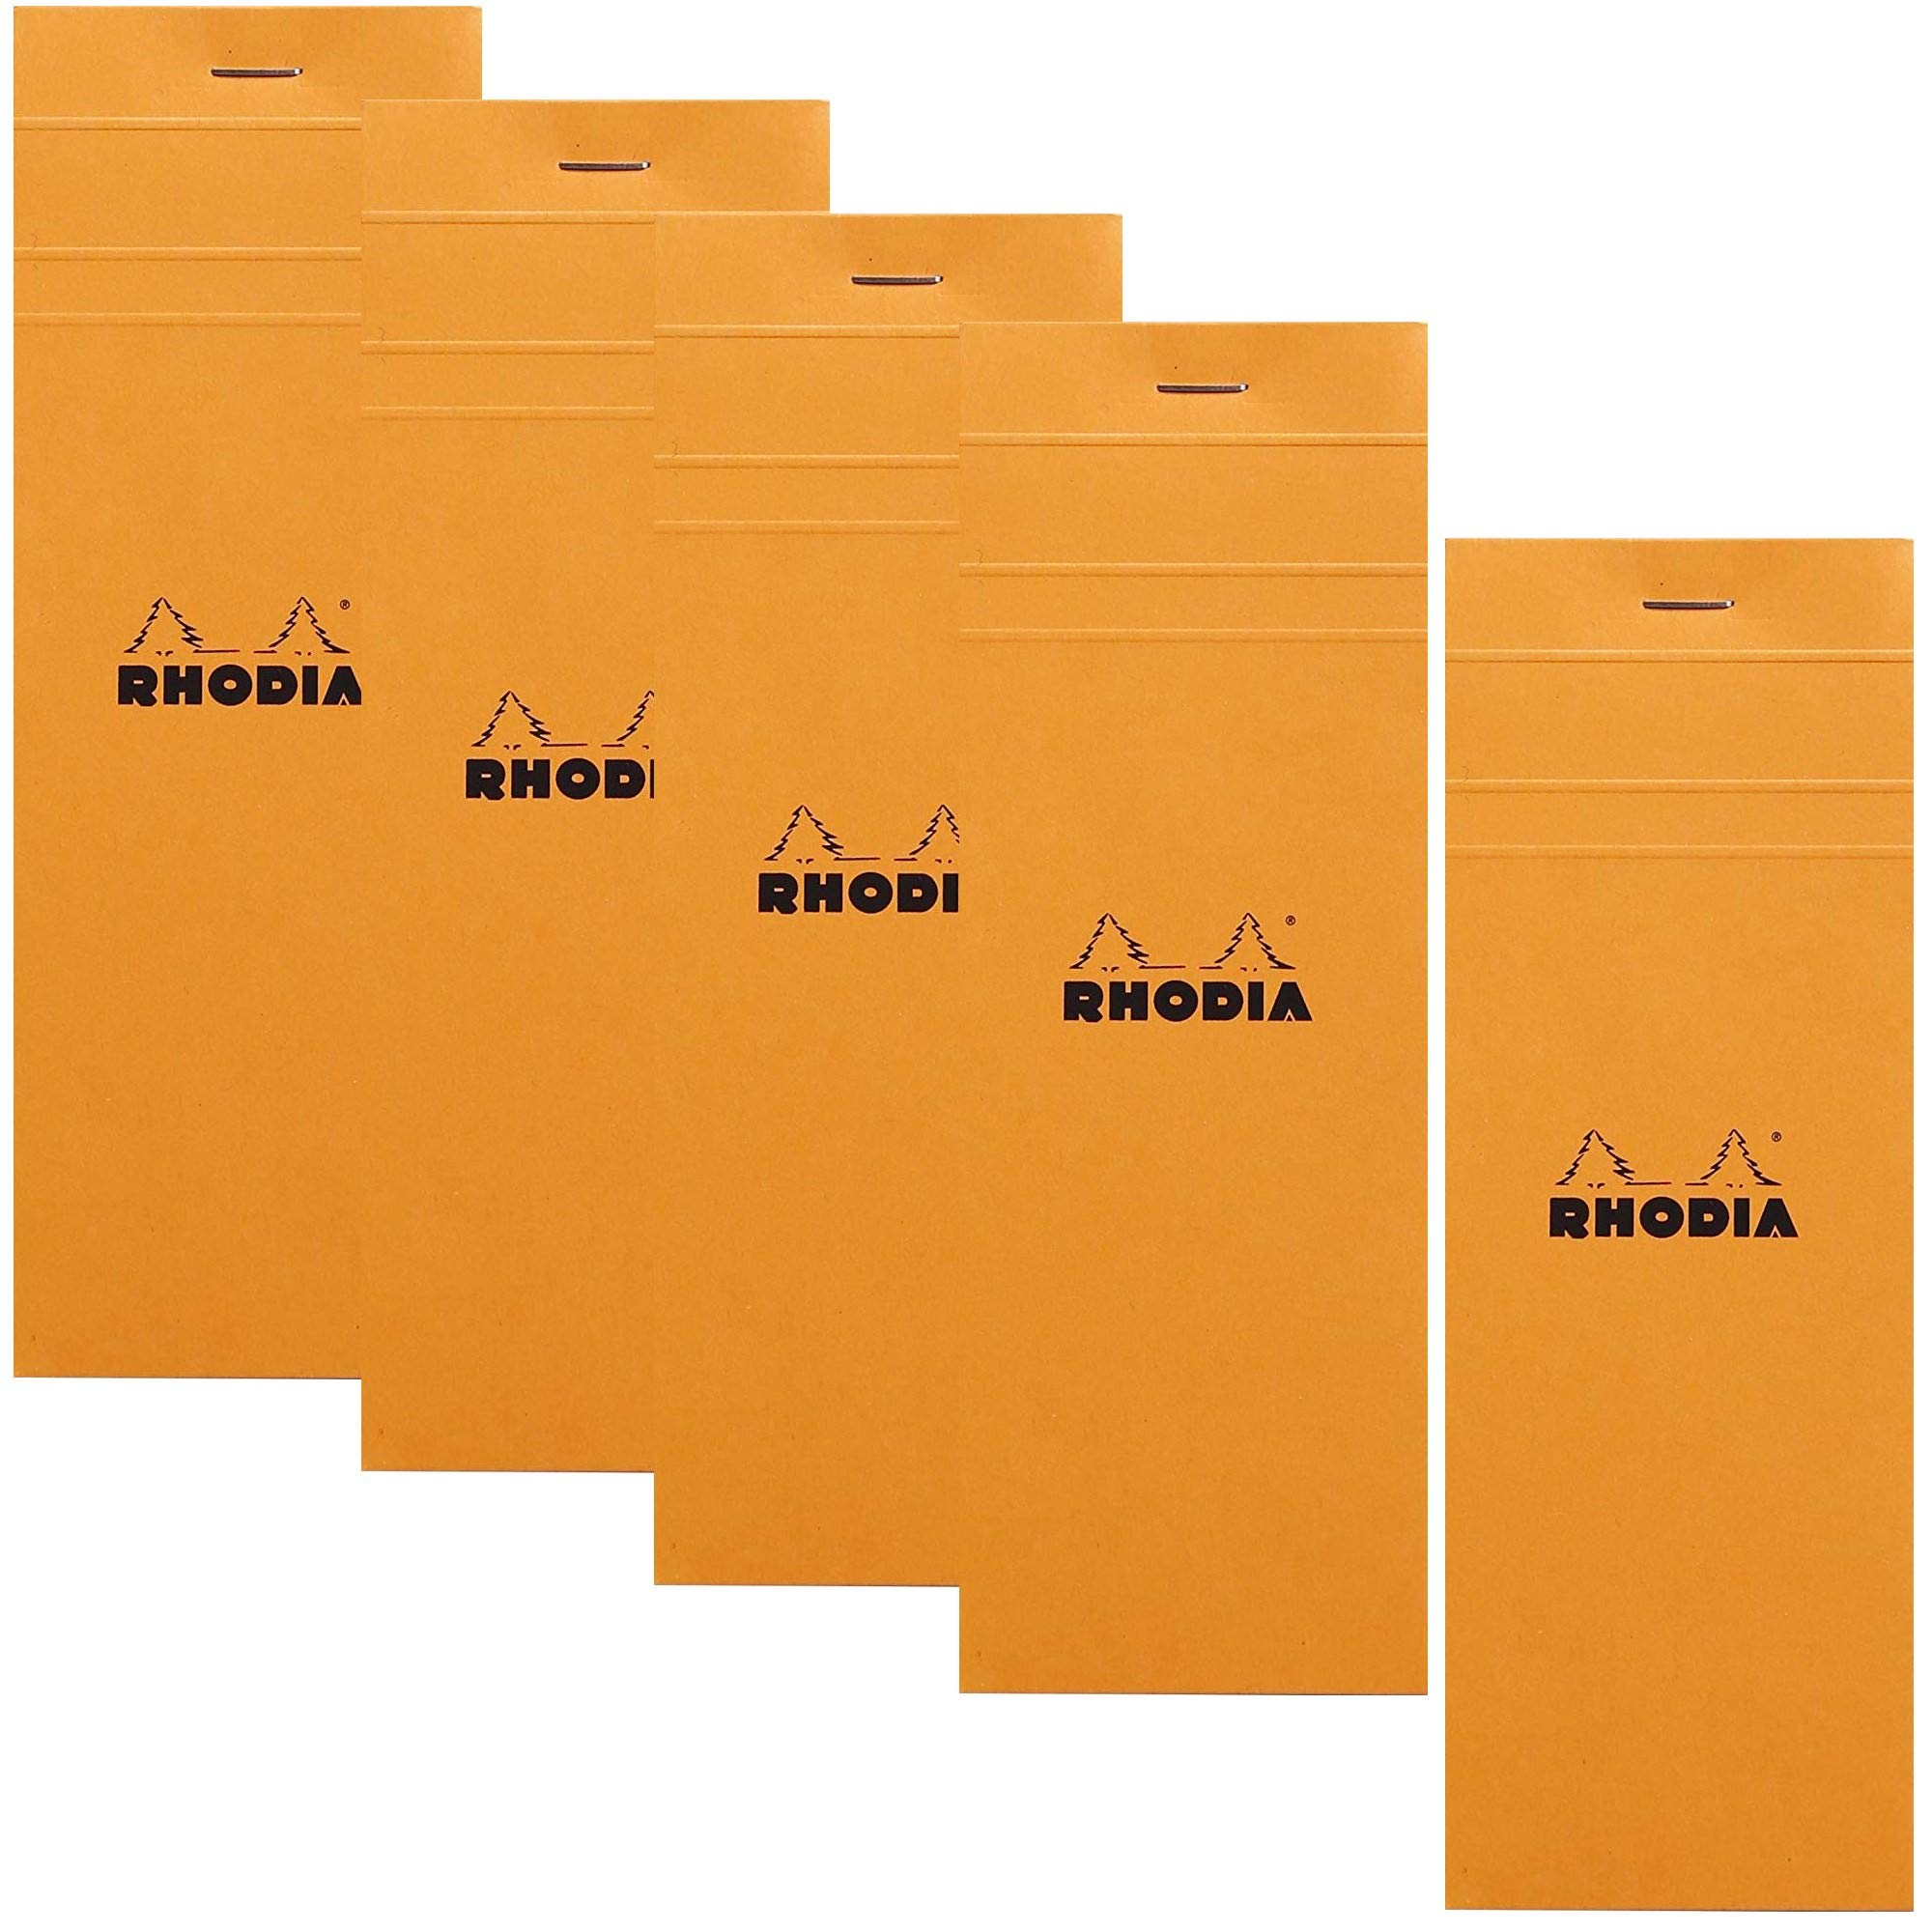 Rhodia Staplebound Notepad - Graph 80 sheets - 3 x 8 1/4 - Orange cover, Pack of 5